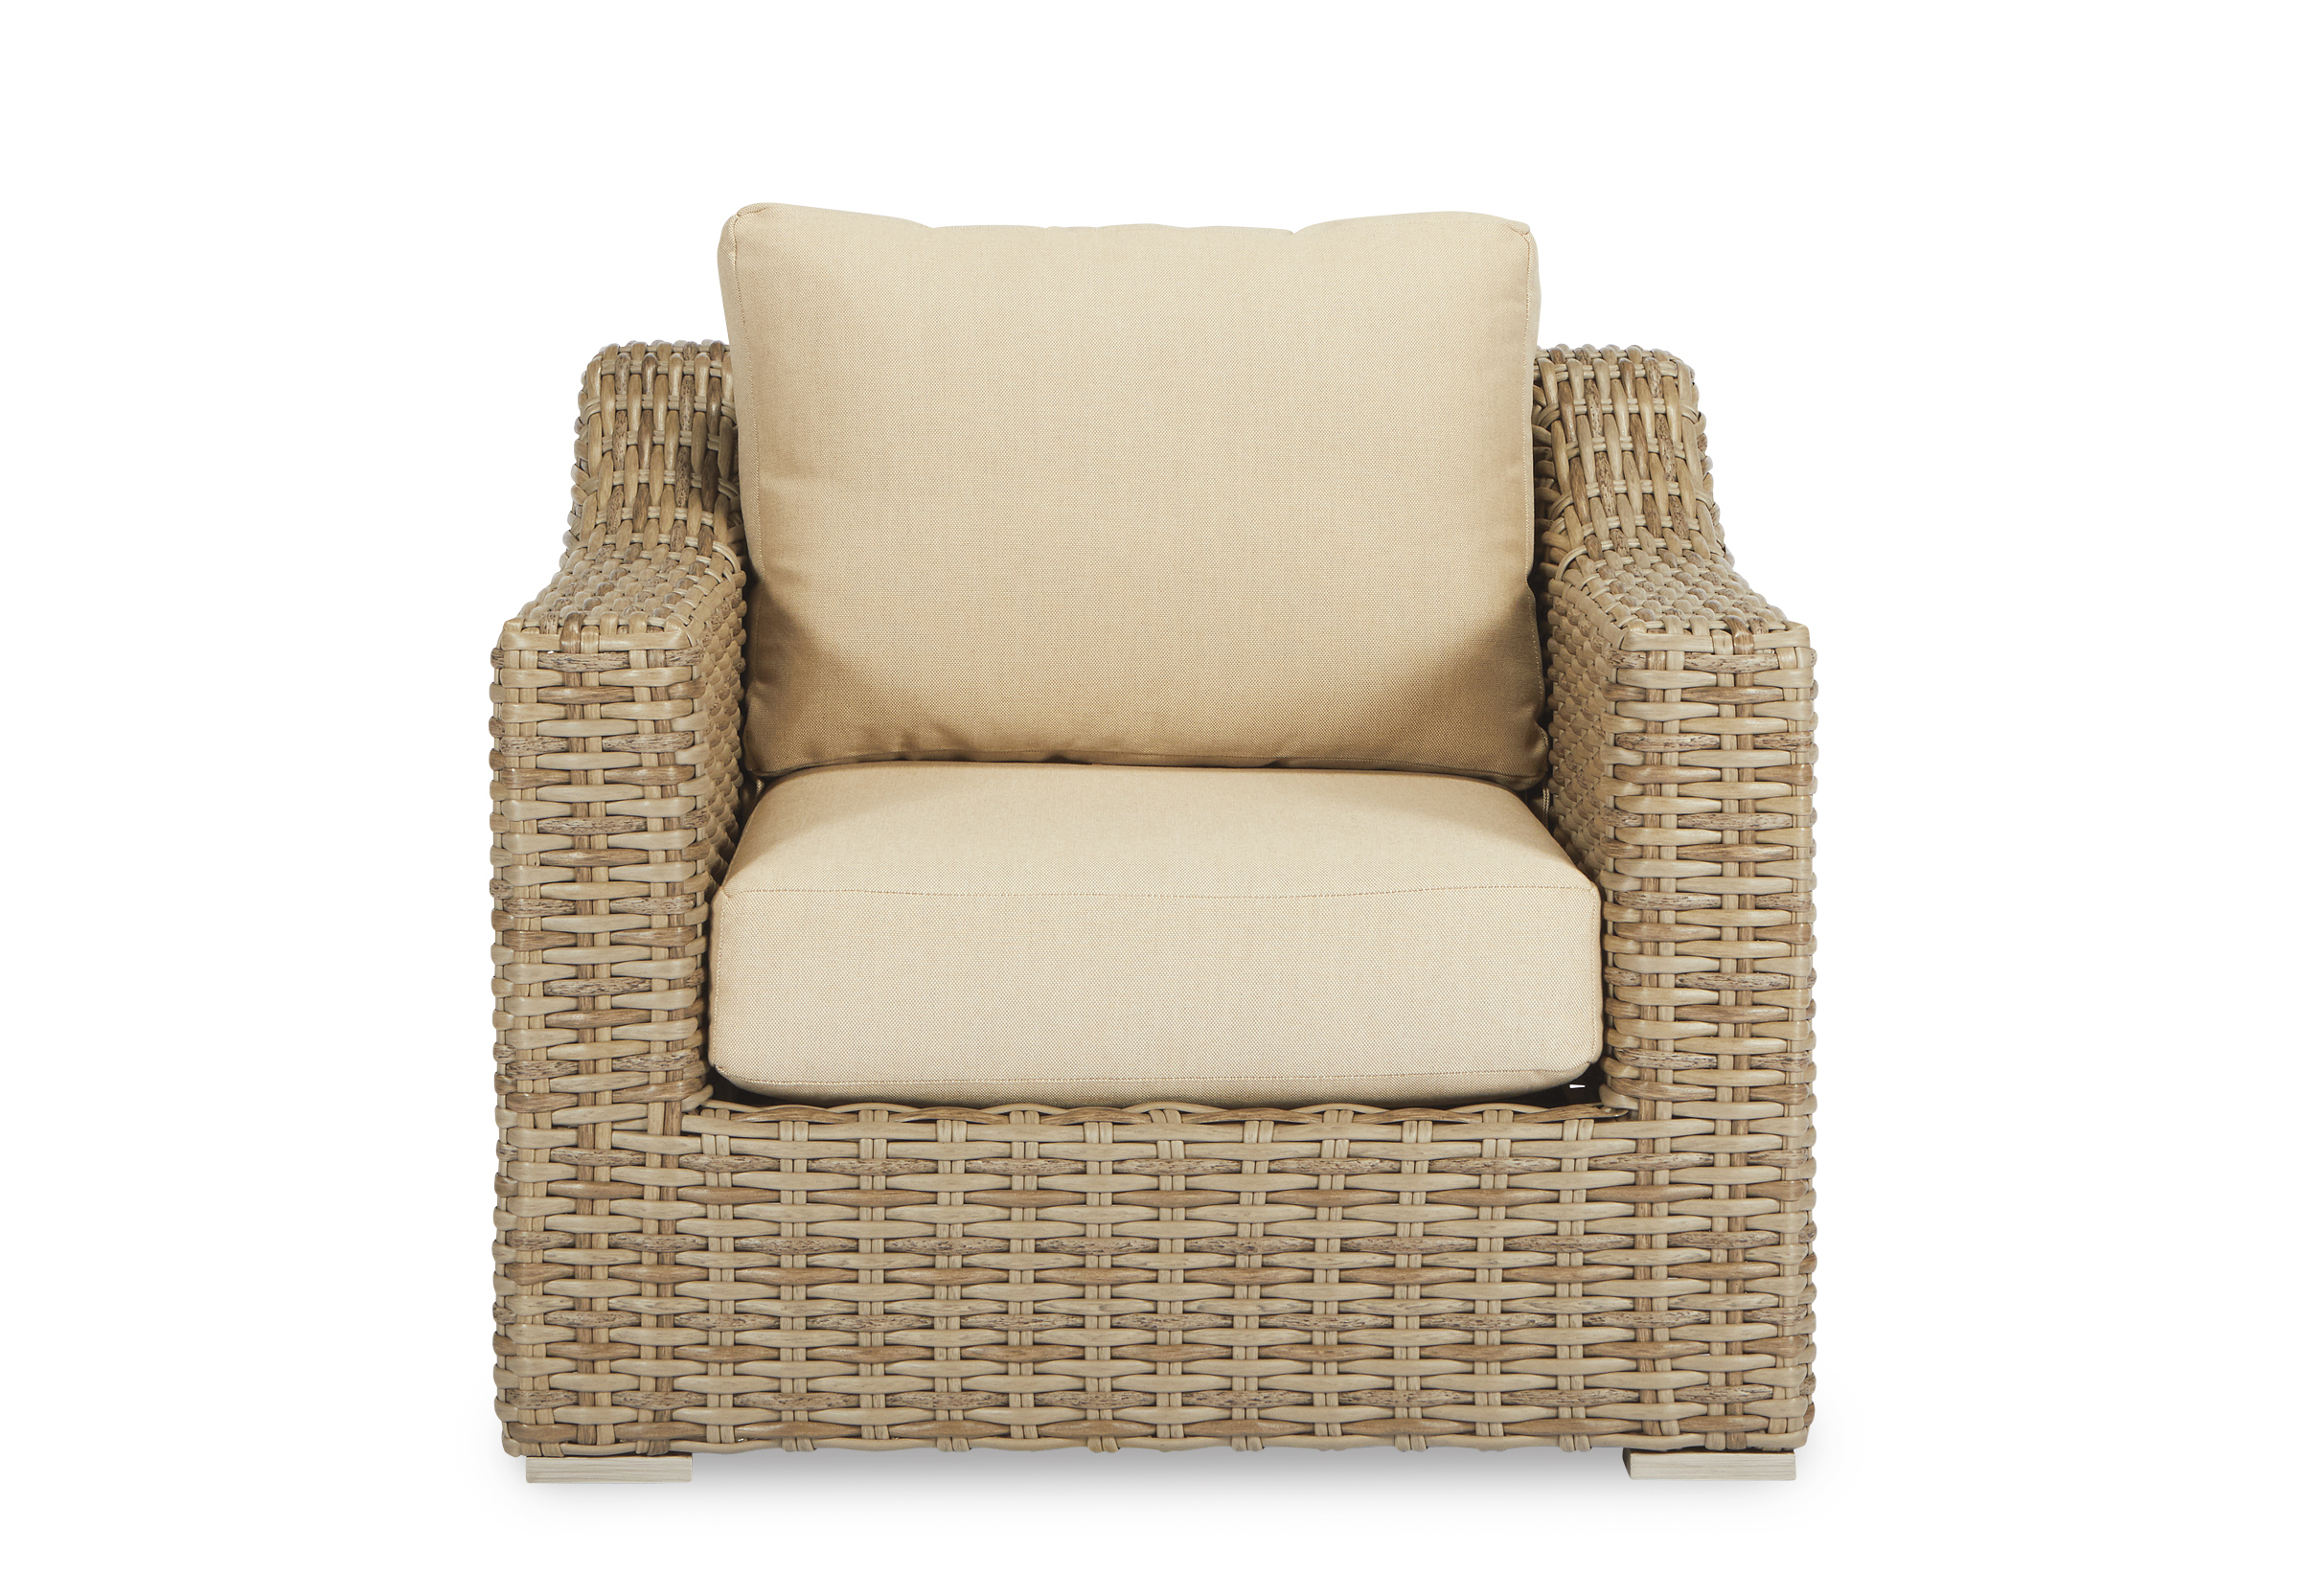 Sorrento Lounge Chair Part 29